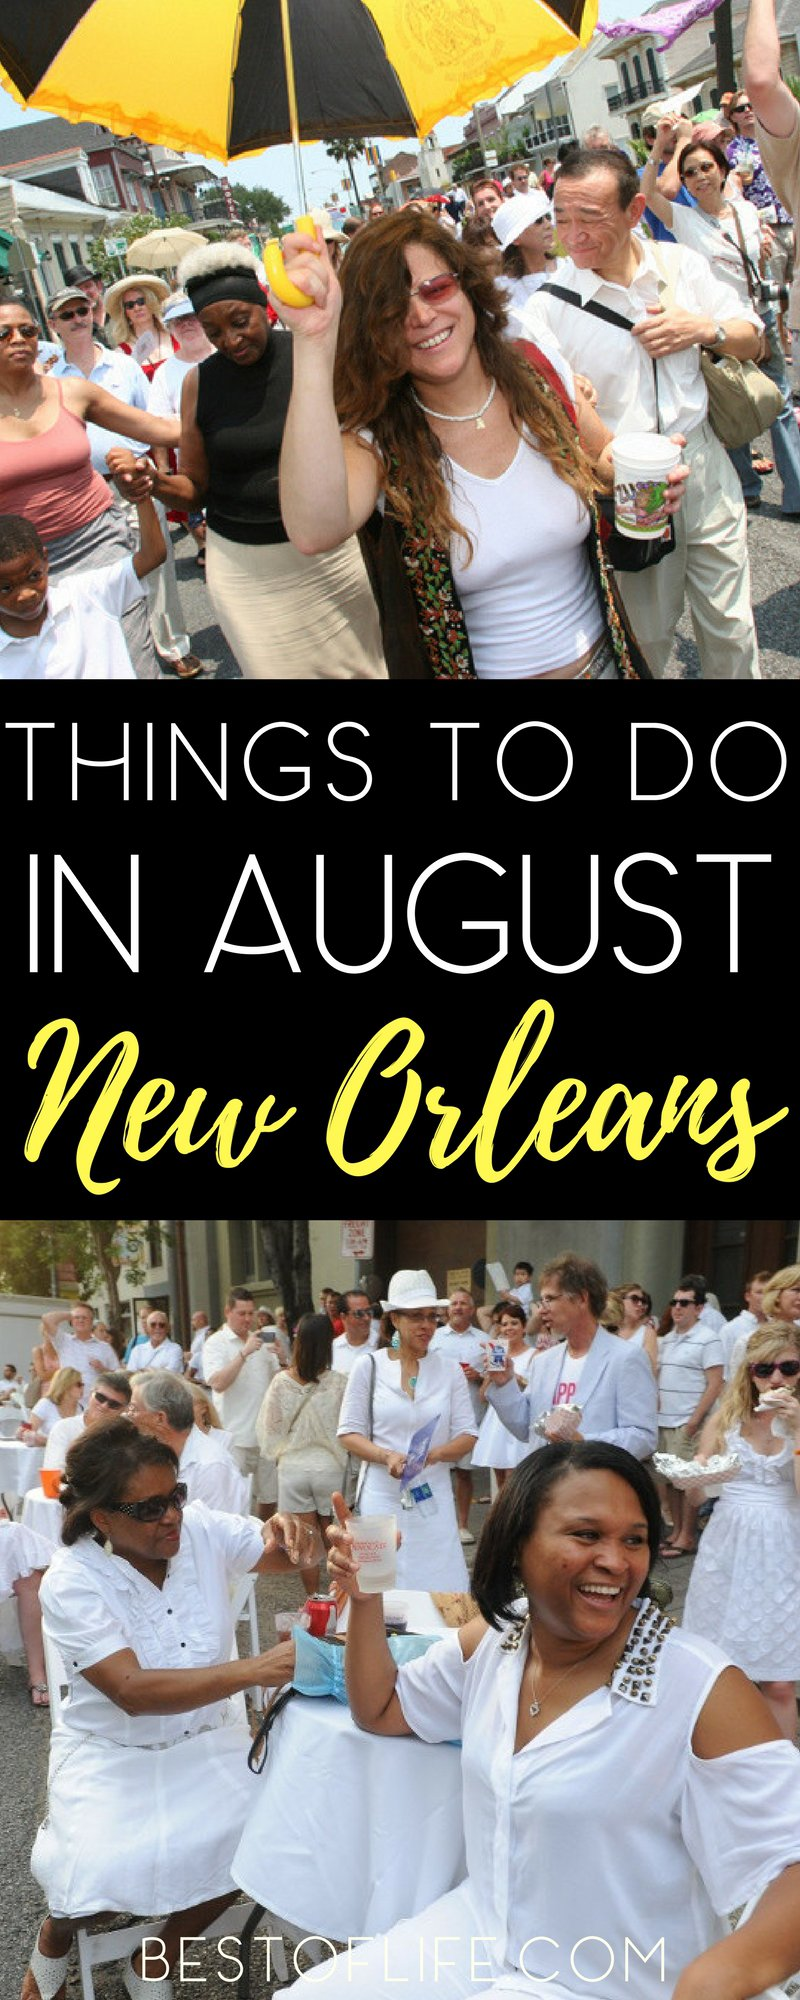 Looking for things to do in New Orleans August 2017 is as easy as finding things to do any other time of year in NOLA. You just need to go outside. Things to do in New Orleans | What to do in New Orleans | Best Things to do in New Orleans | Popular New Orleans Events